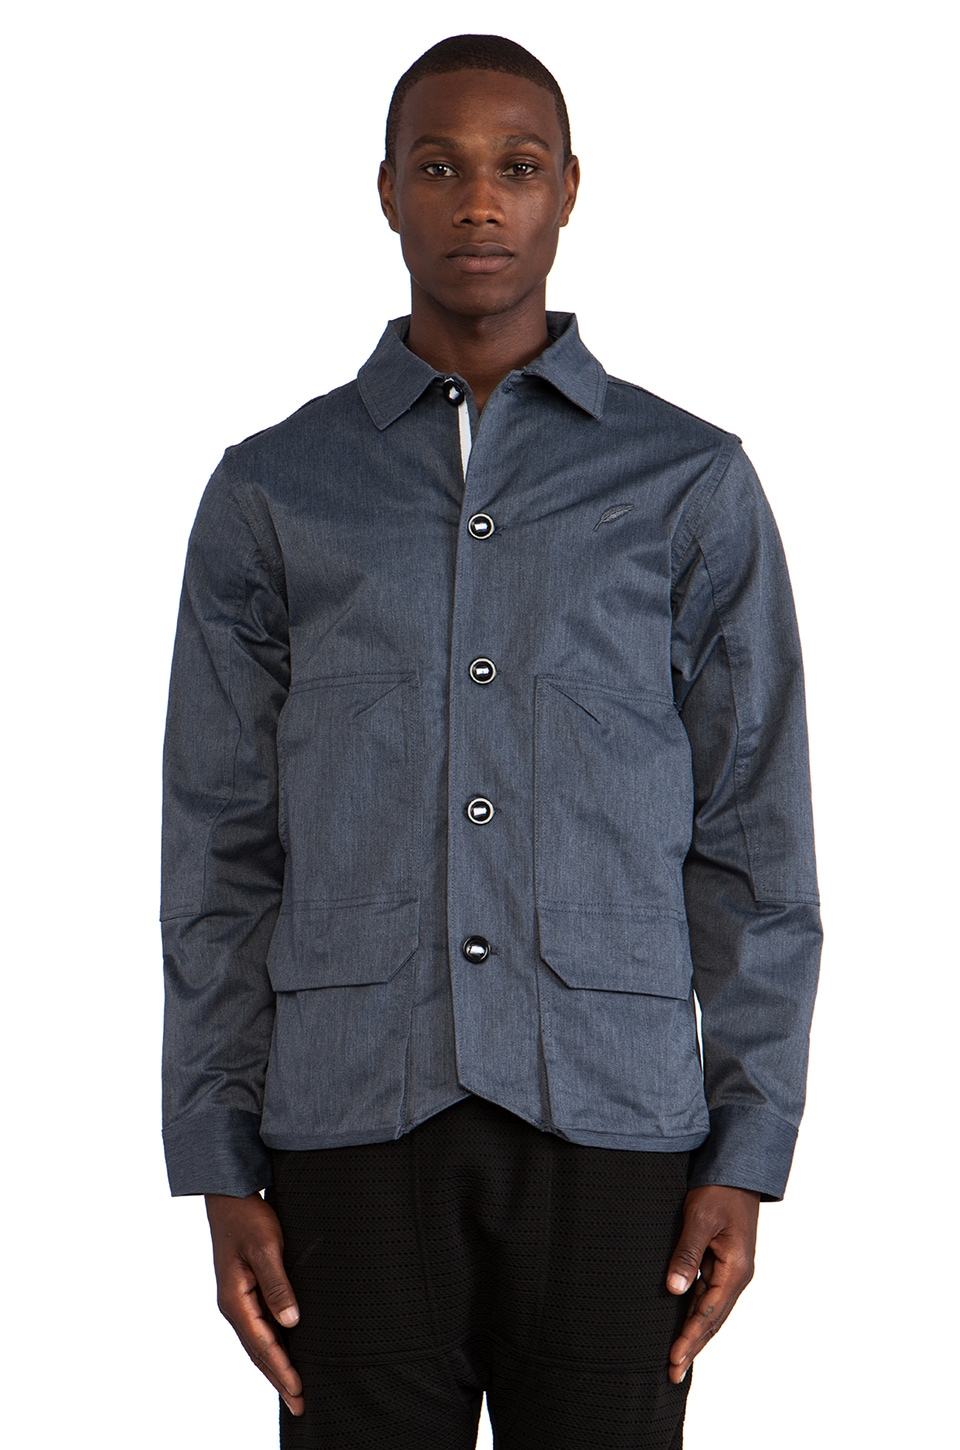 Publish Hawk Coaches Jacket in Navy